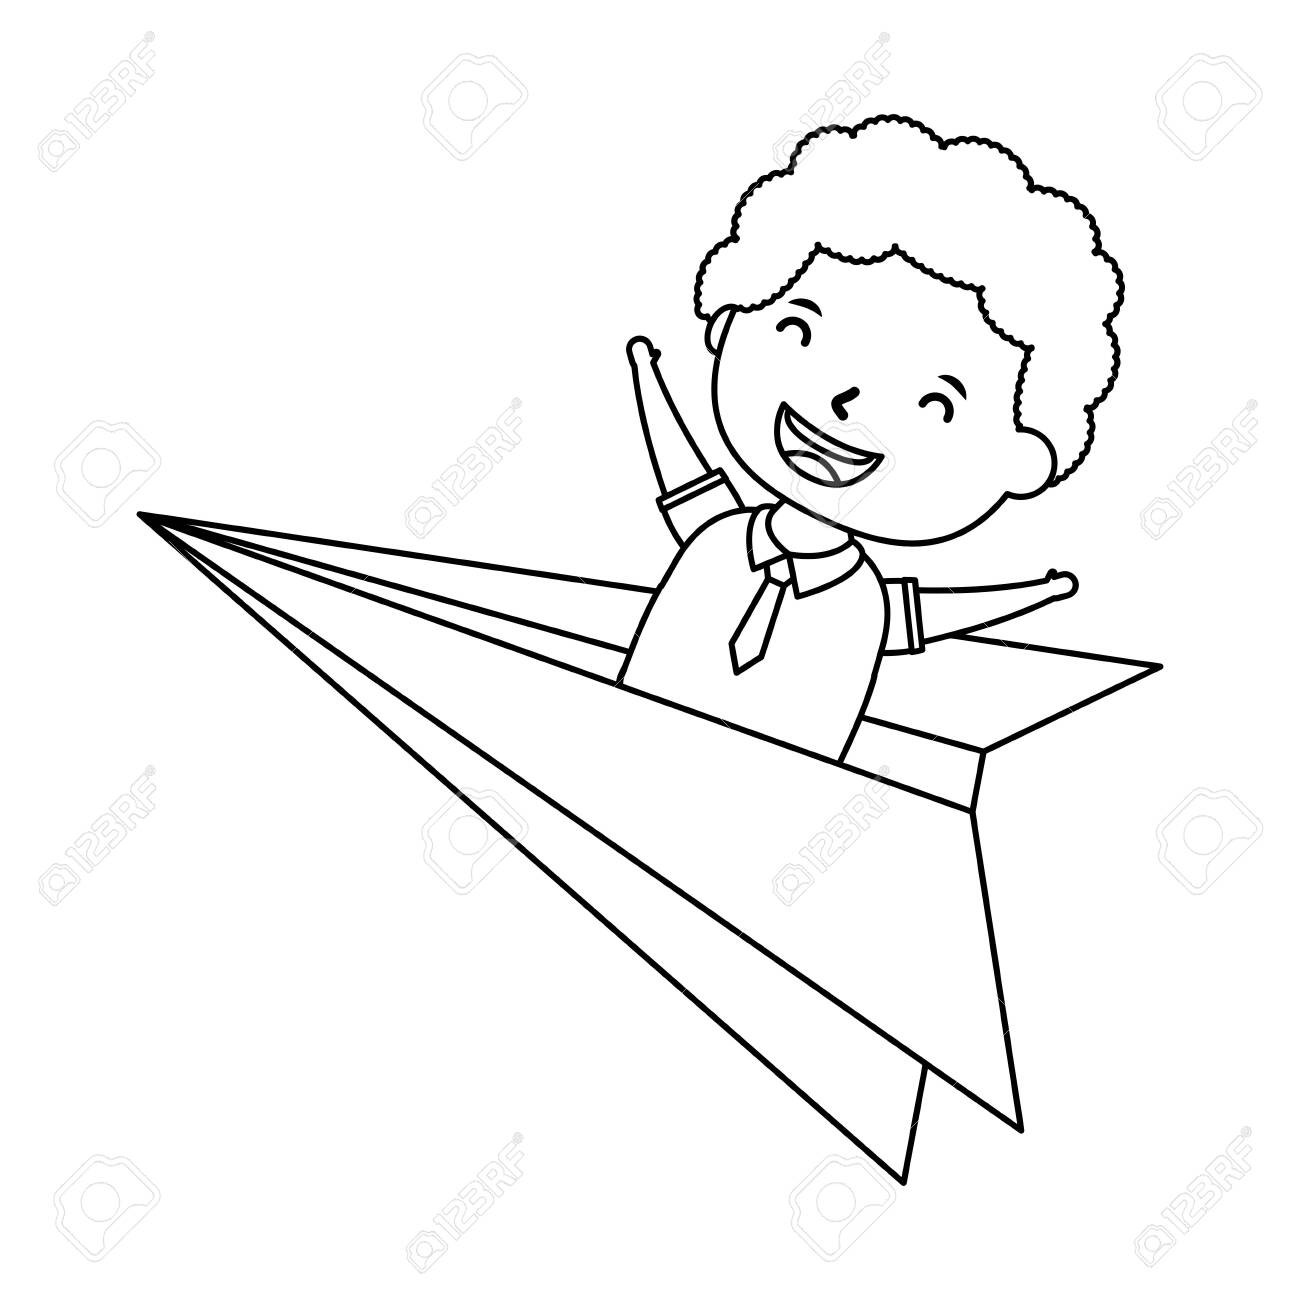 Cute Little Student Boy In Paper Airplane Vector Illustration Royalty Free Cliparts Vectors And Stock Illustration Image 149143347